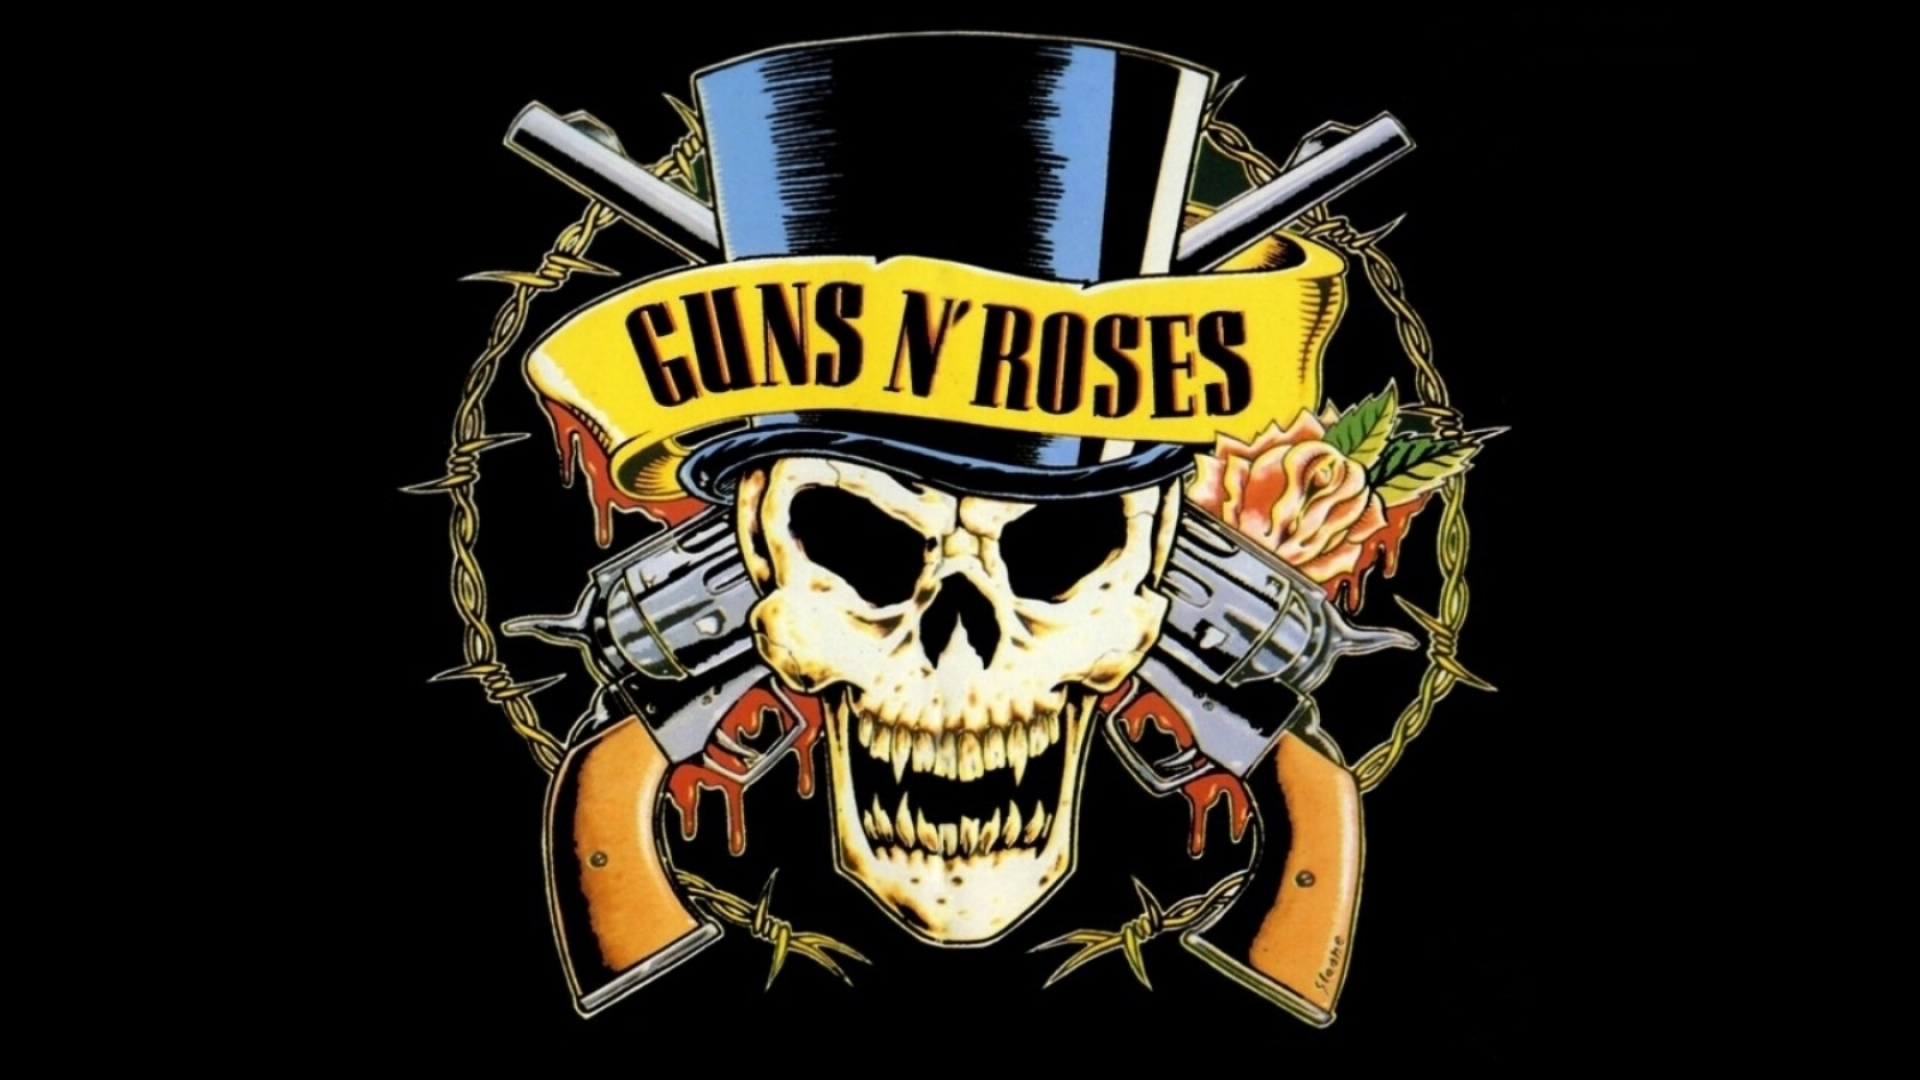 Download Wallpaper 1920x1080 guns n roses, revolvers ...